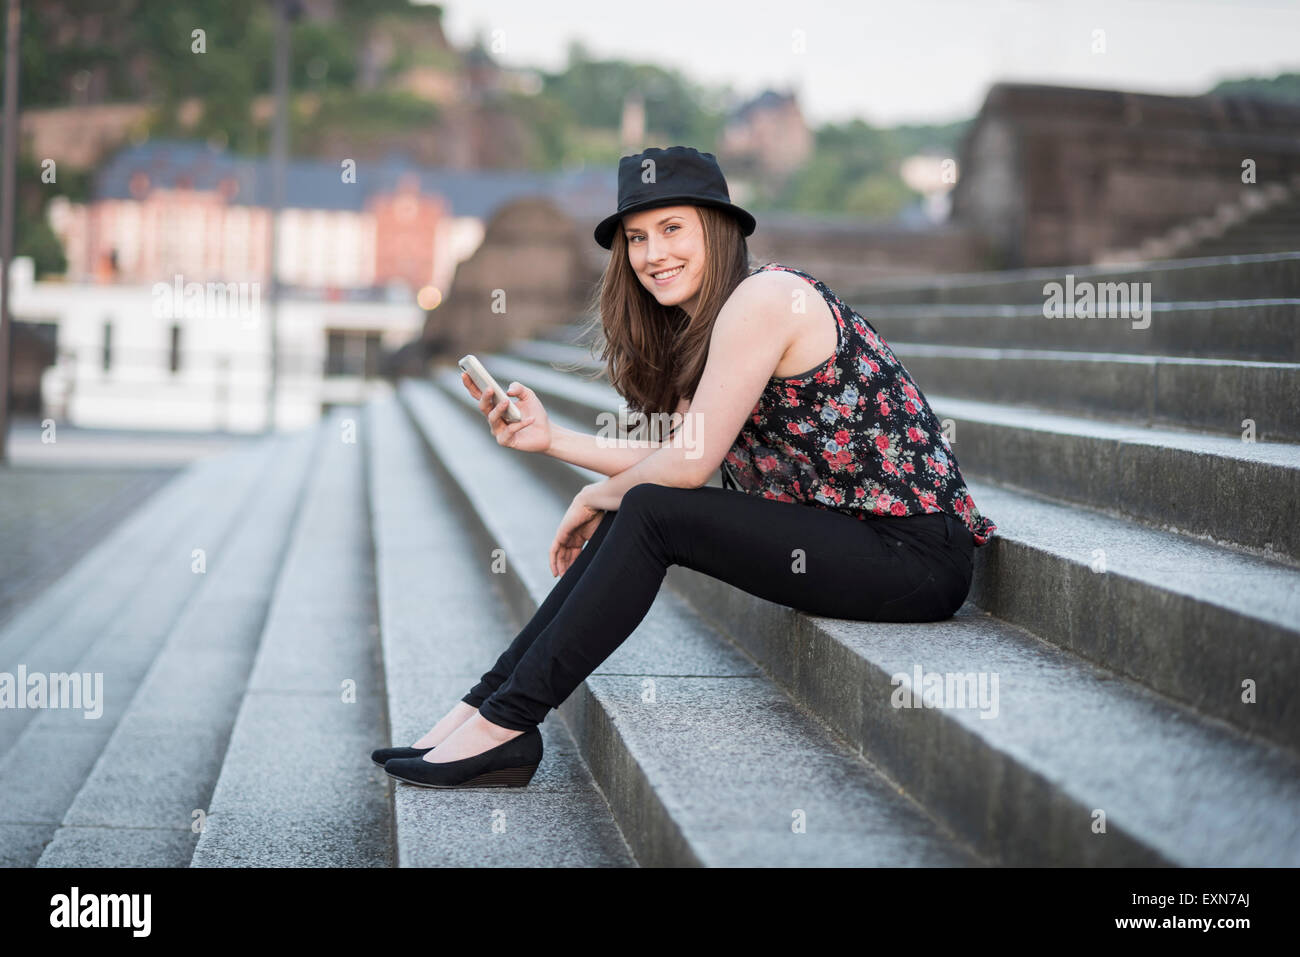 Germany, Koblenz, Deutsches Eck, young woman with cell phone sitting on stairs - Stock Image